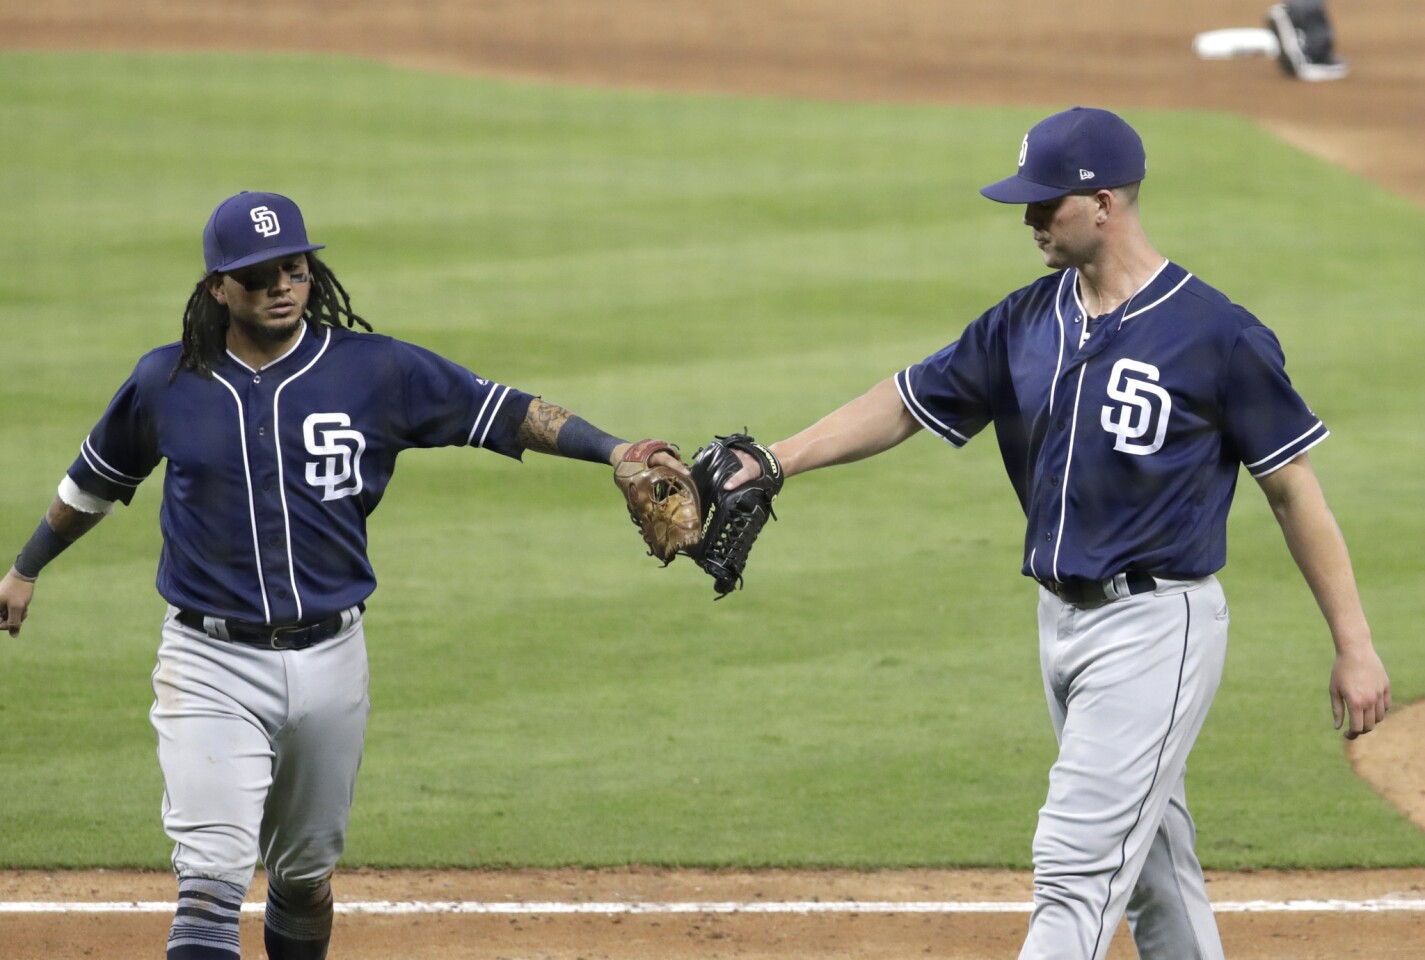 San Diego Padres starting pitcher Clayton Richard, right, bumps fists with San Diego Padres shortstop Freddy Galvis after losing a no-hit bid when Miami Marlins' Miguel Rojas hit a single during the seventh inning of a baseball game, Sunday, June 10, 2018, in Miami. The Padres won 3-1. (AP Photo/Lynne Sladky)